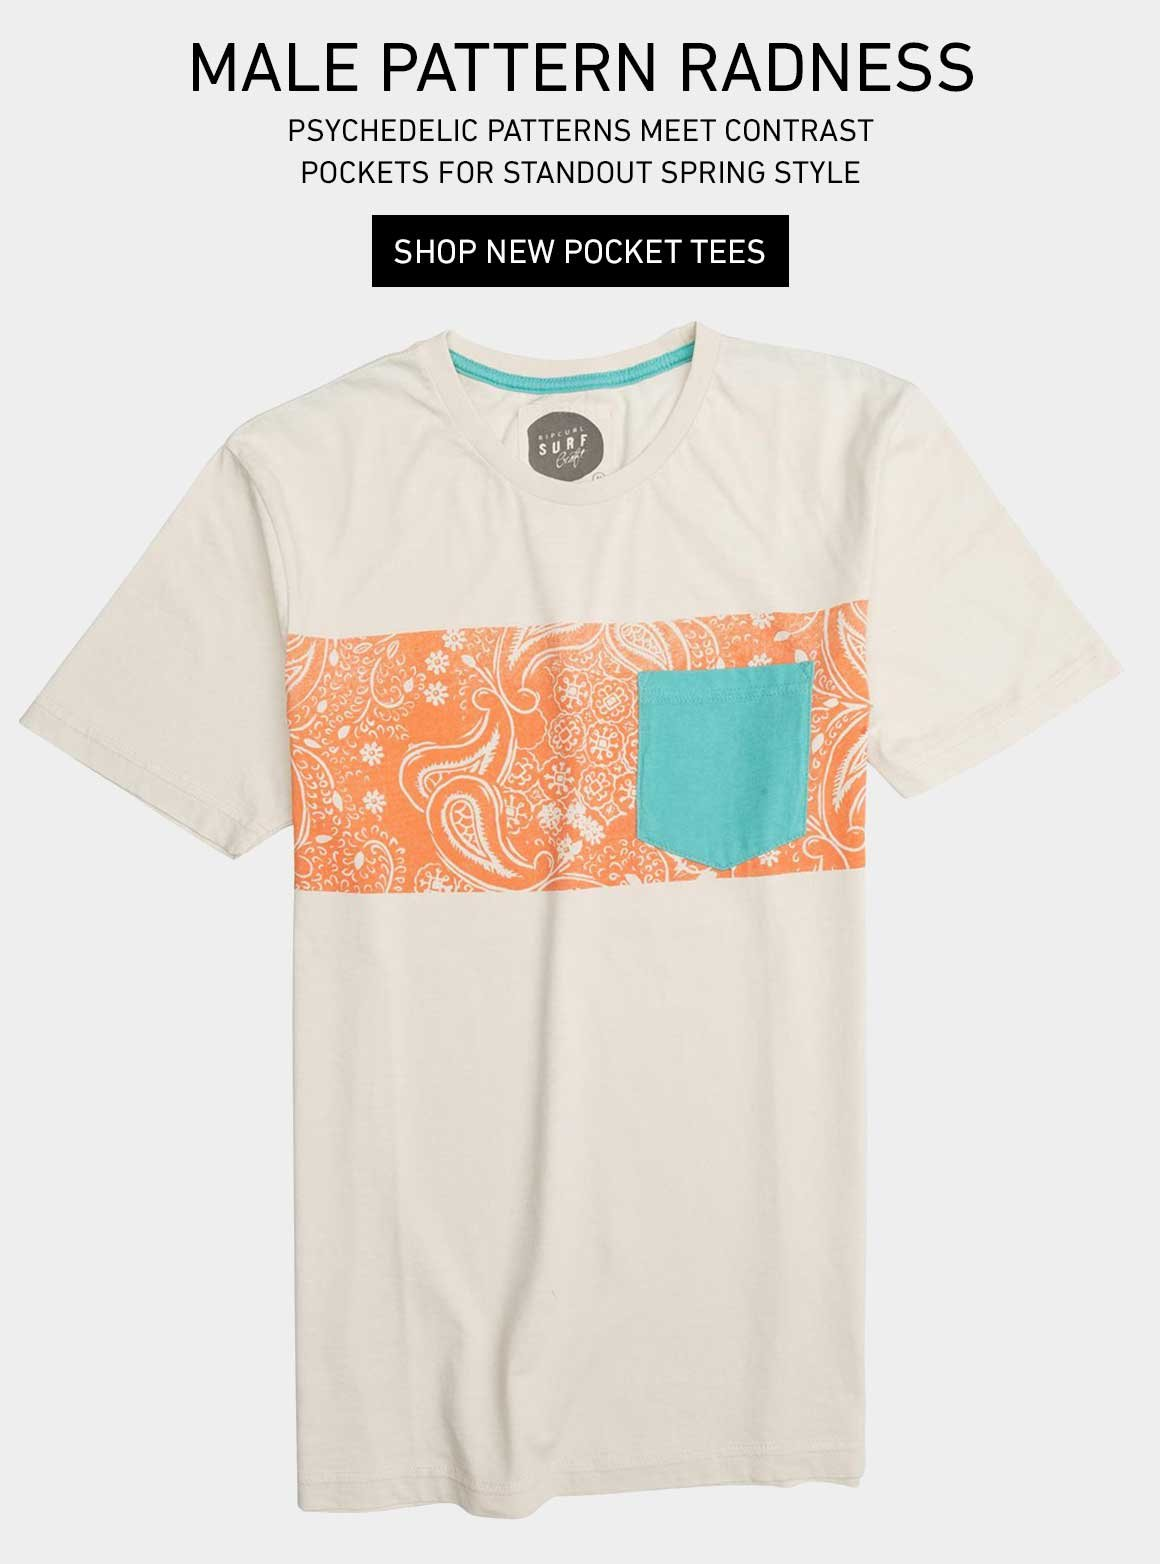 Male Pattern Radness - Shop New Pocket Tees